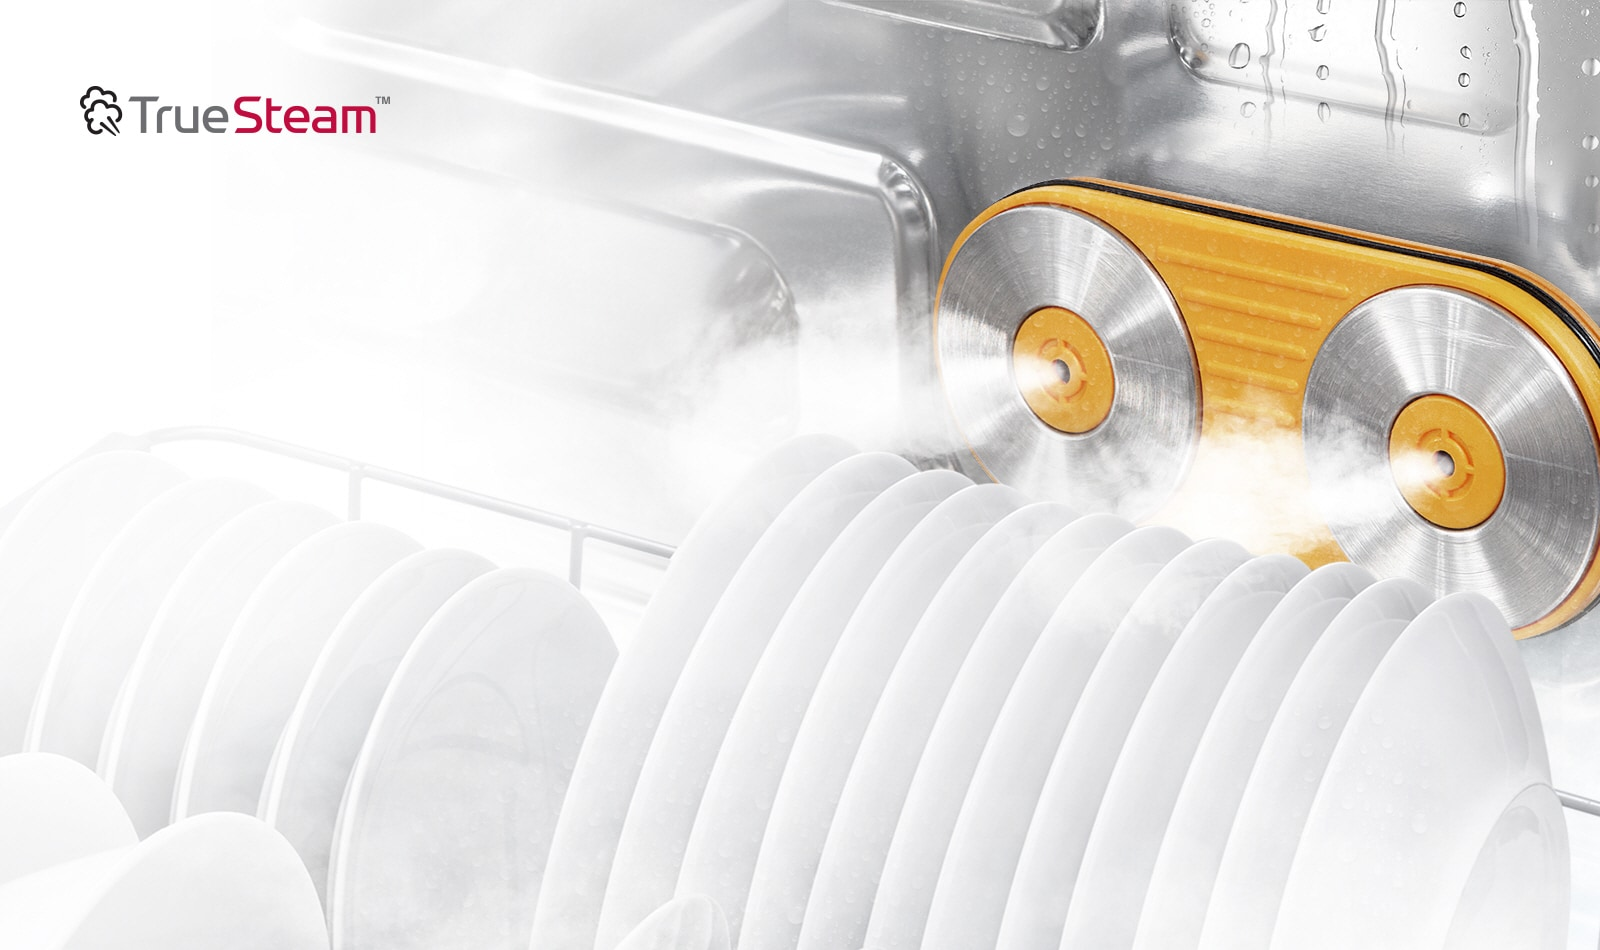 TrueSteam™ Powerful washing with sparkling clean